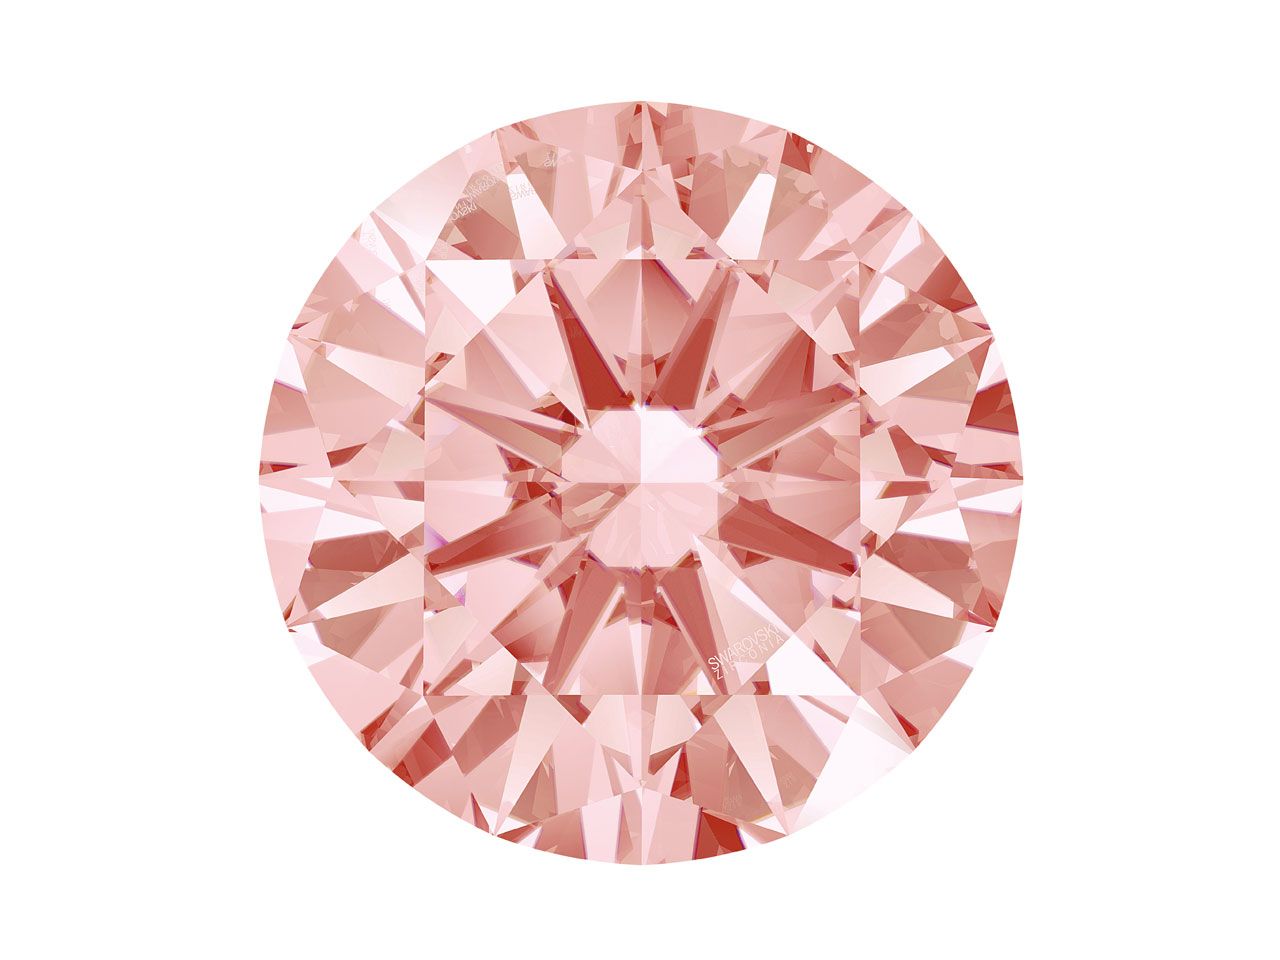 Swarovski Zirconia Round           Pure Brilliance Cut 4.0mm Fancy    Morganite